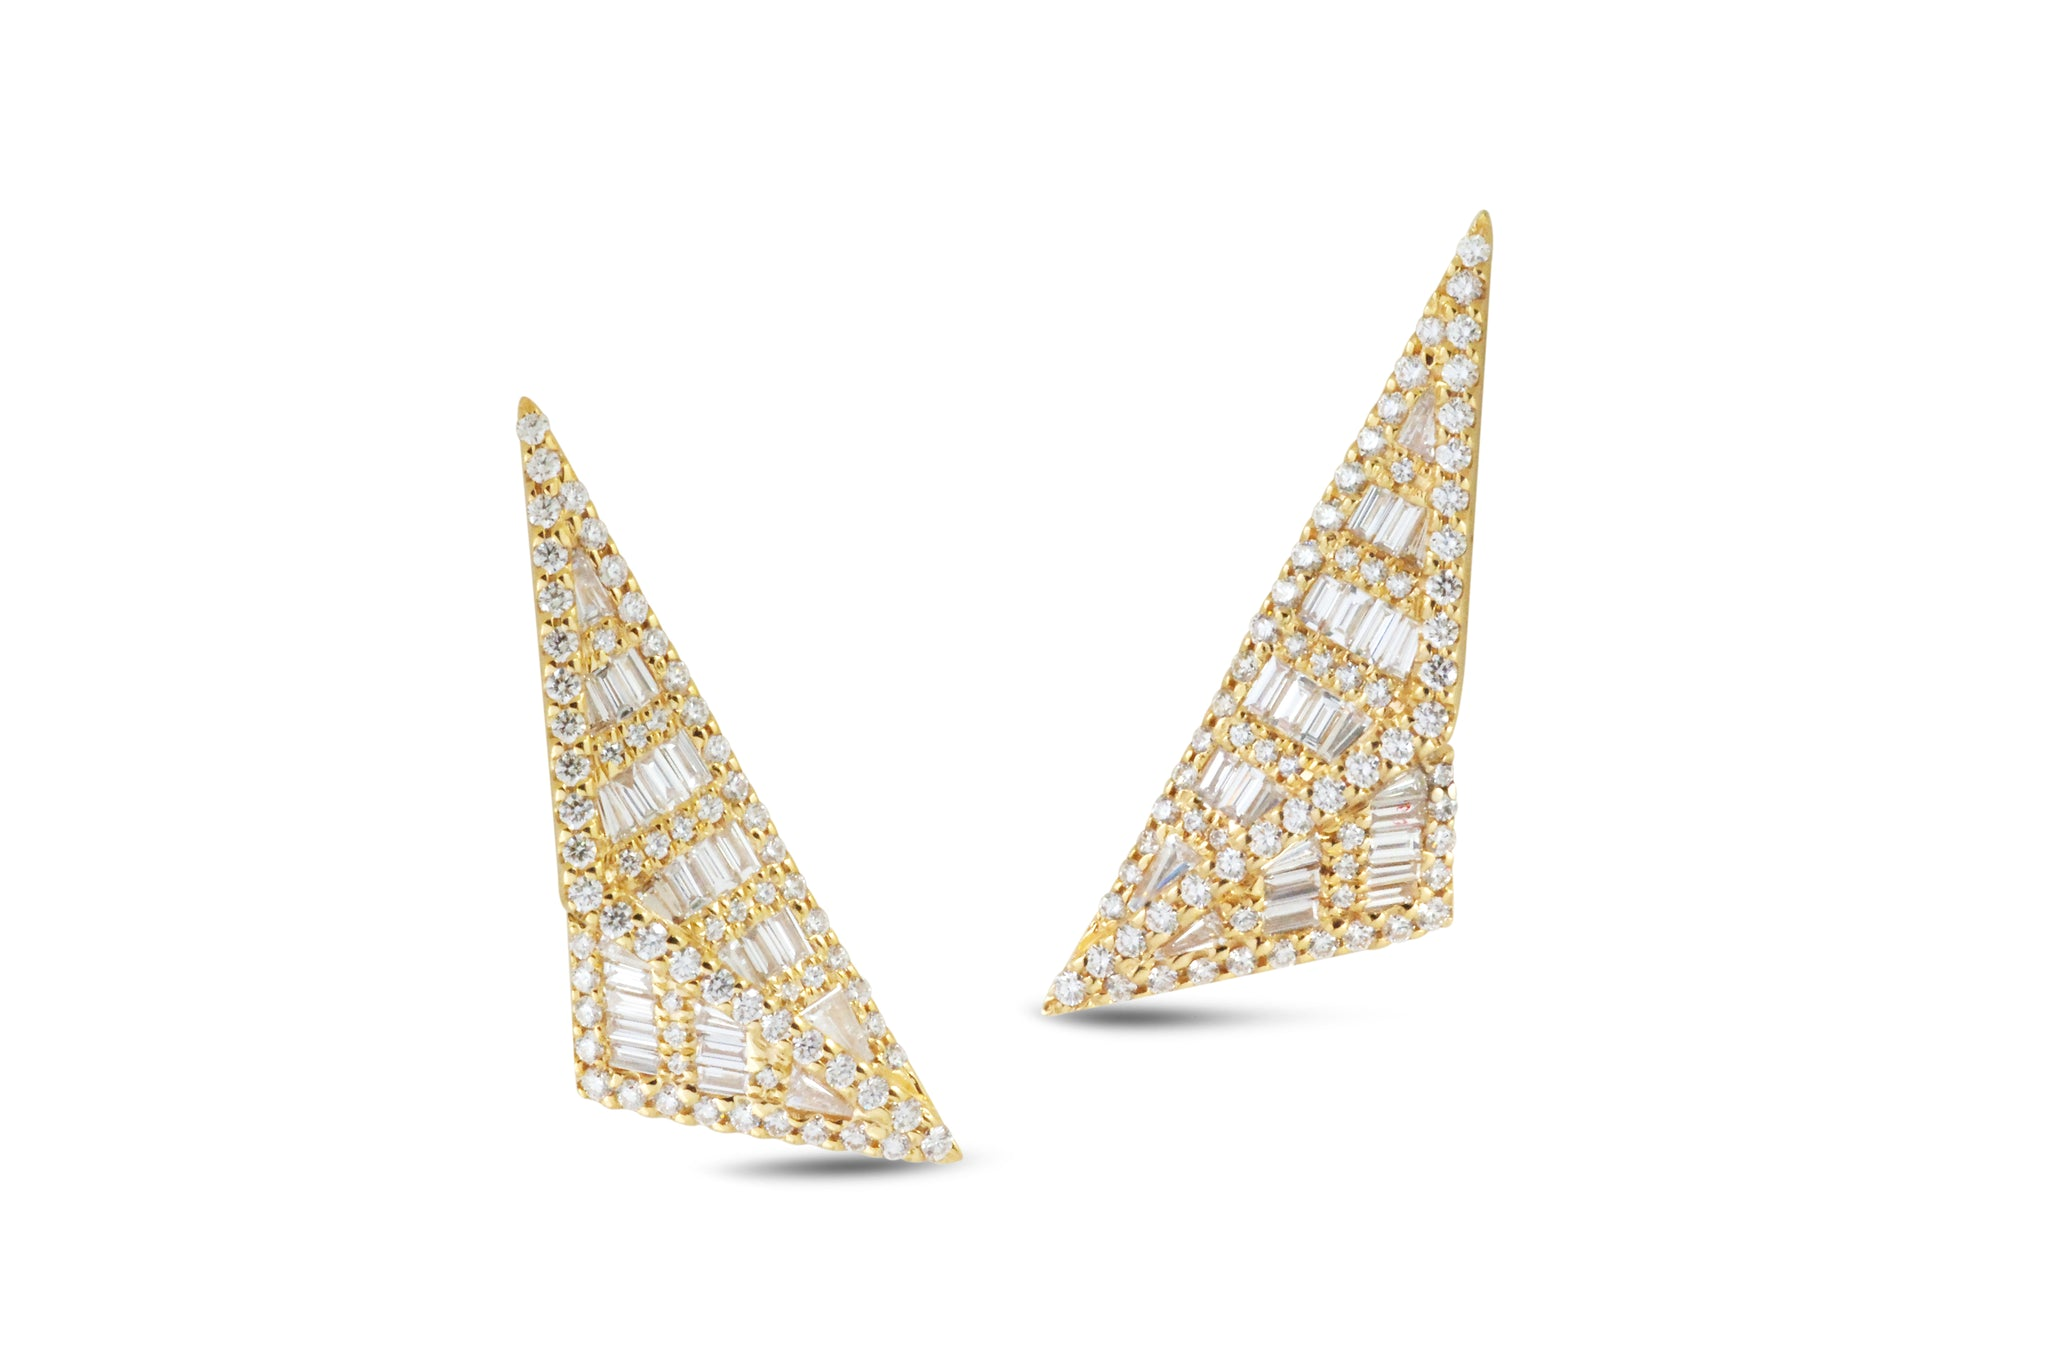 Origami Trillion Diamond Earrings as seen on Jennifer Lopez